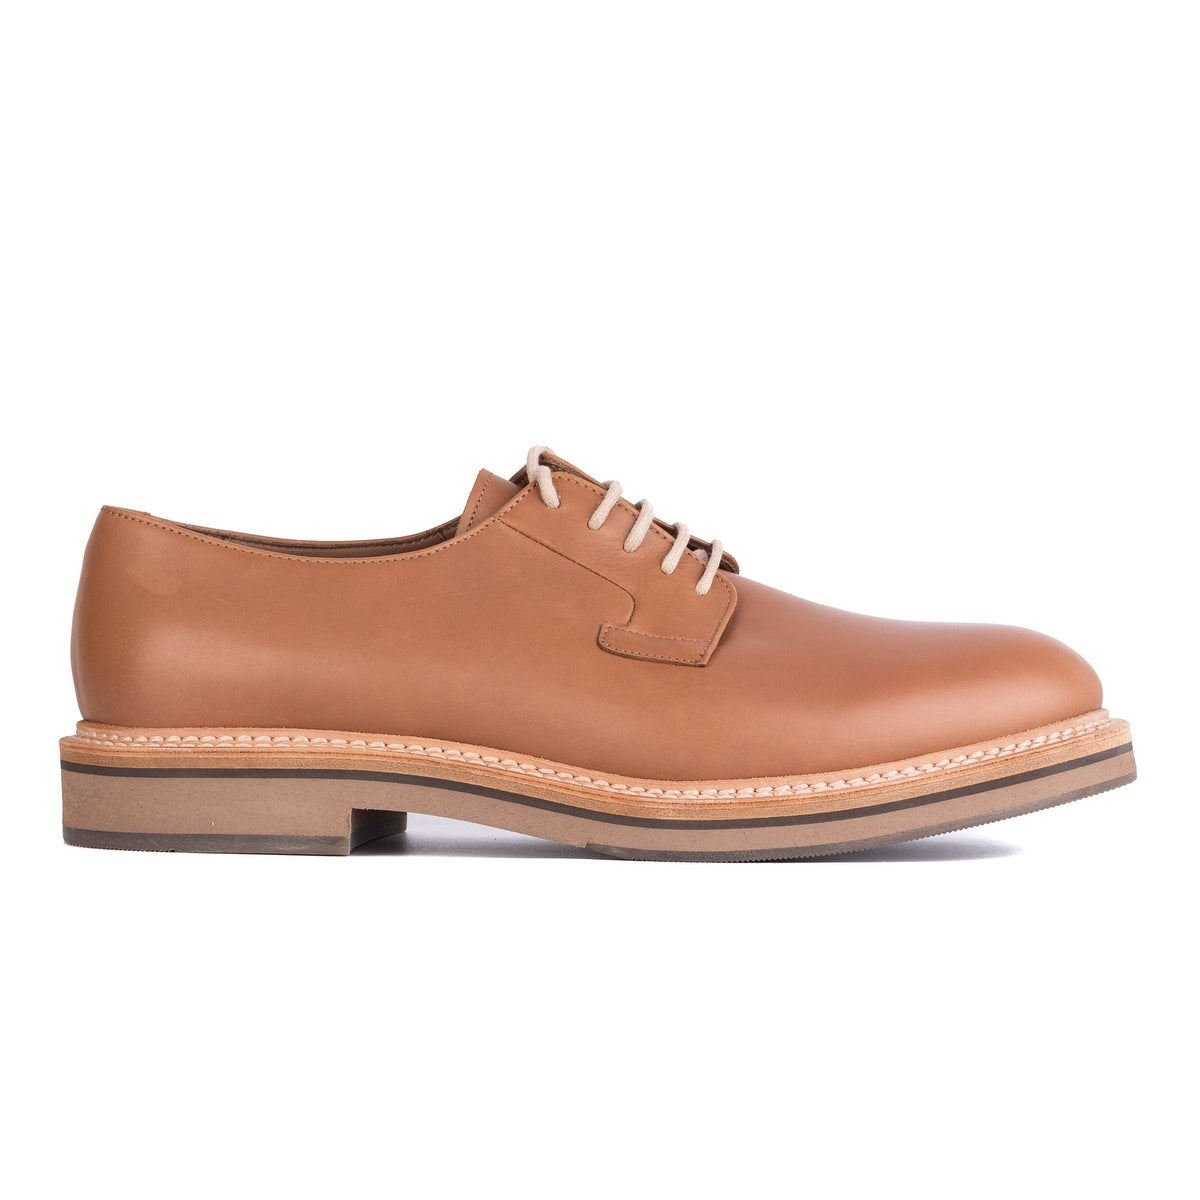 ee9f648f2c533d Brunello Cucinelli Tan Brown Polished Leather Lace Up Derby Shoes~RTL$1250